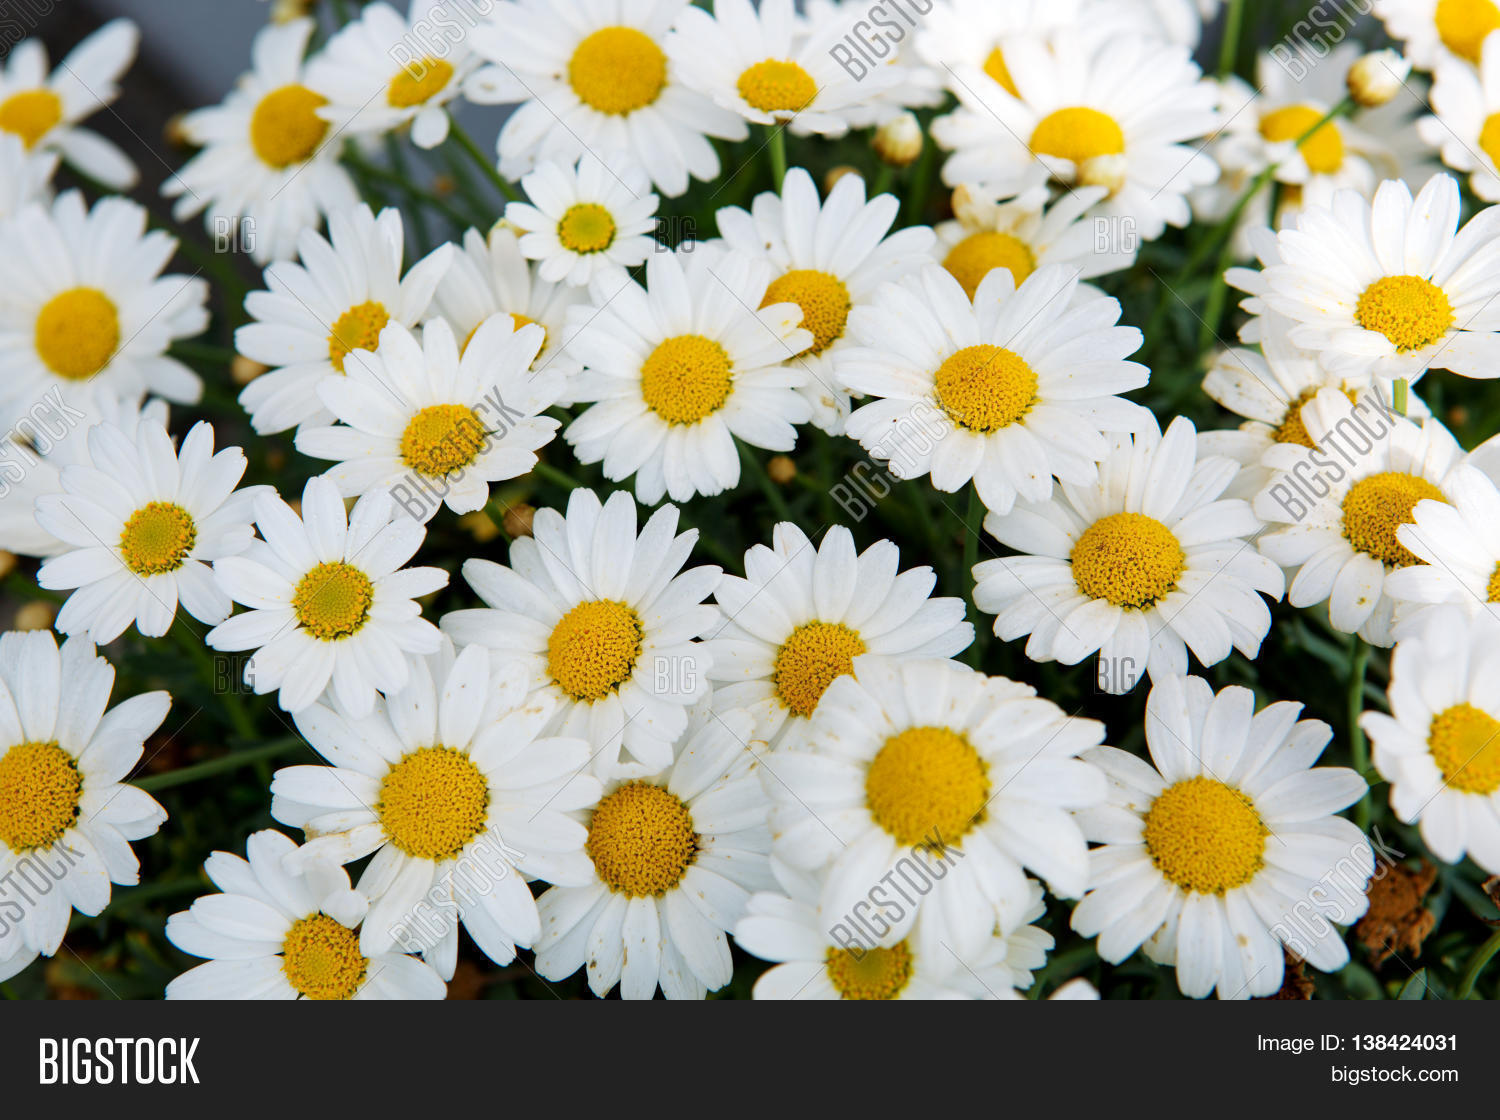 Daisy flowers image photo free trial bigstock daisy flowers backgroundcro of beautiful white daisies flowers izmirmasajfo